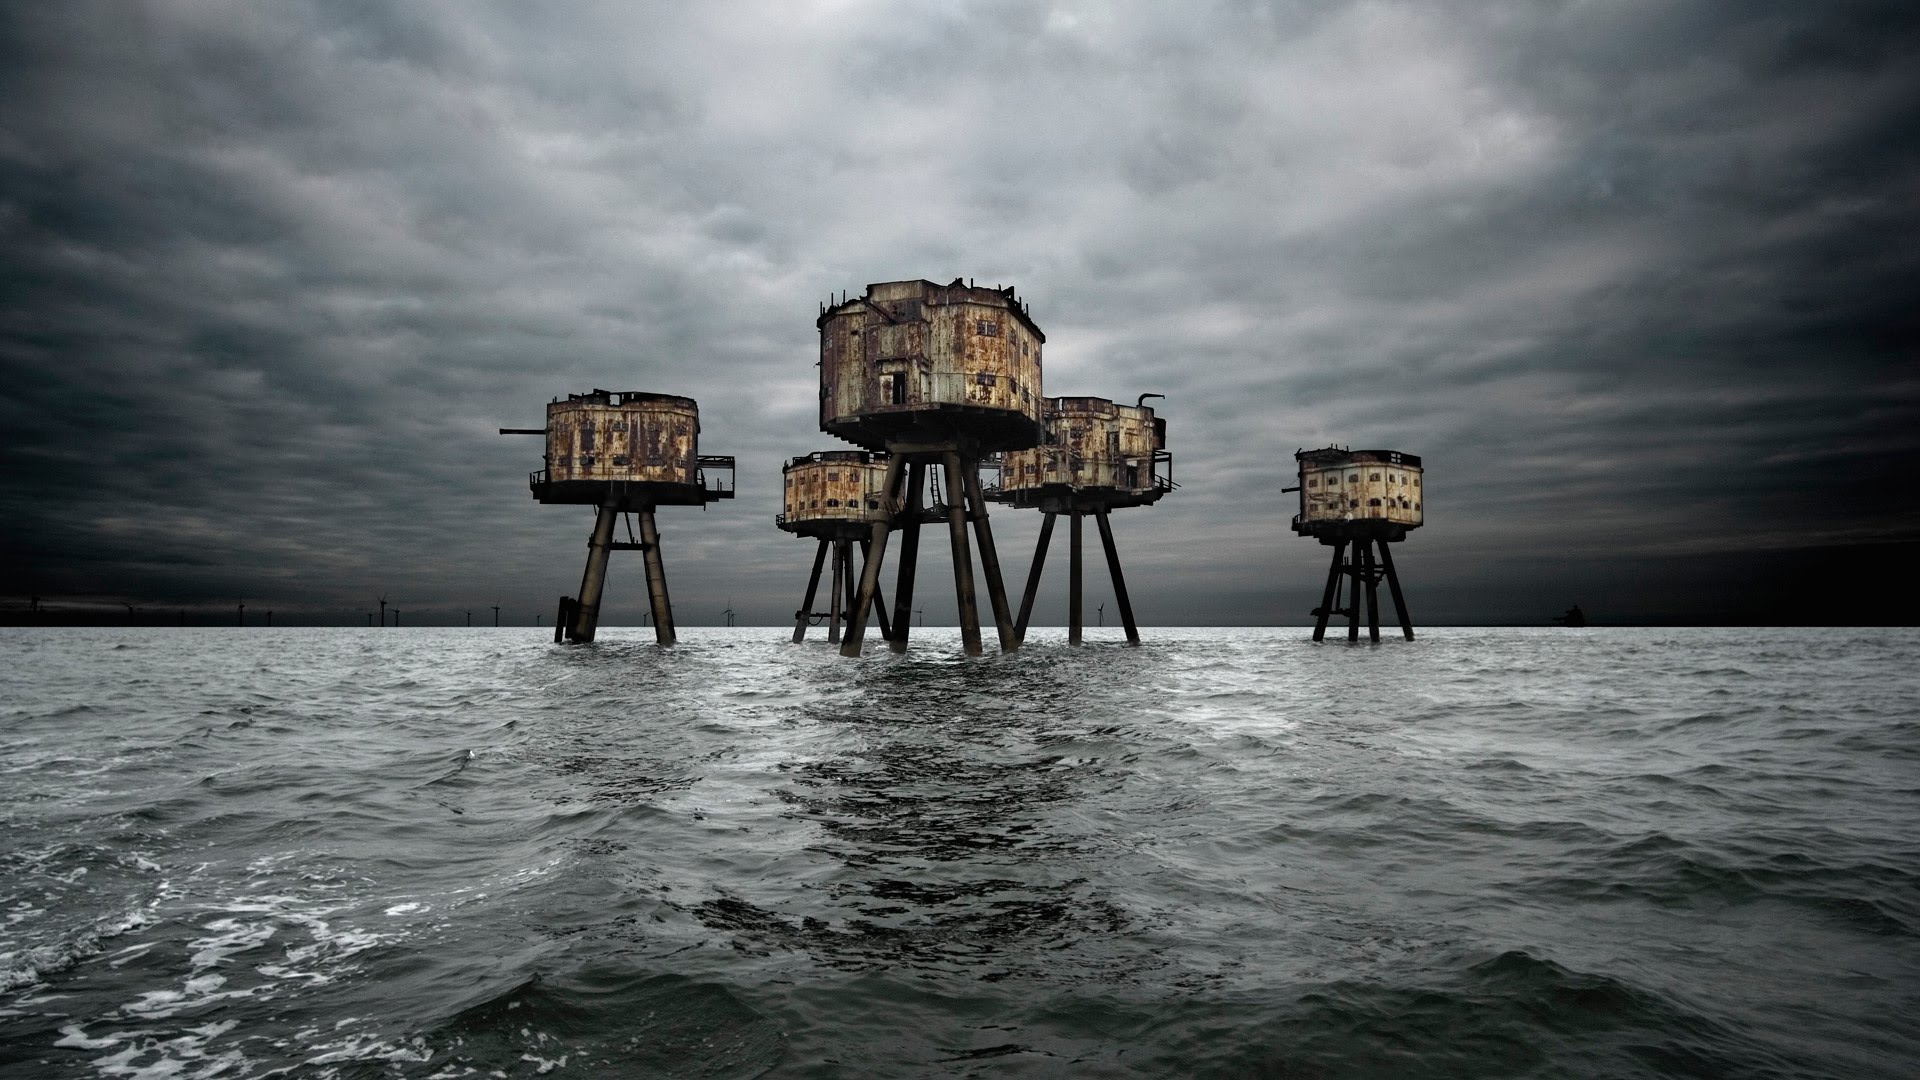 Maunsell Forts in the Thames Estuary, England.jpg